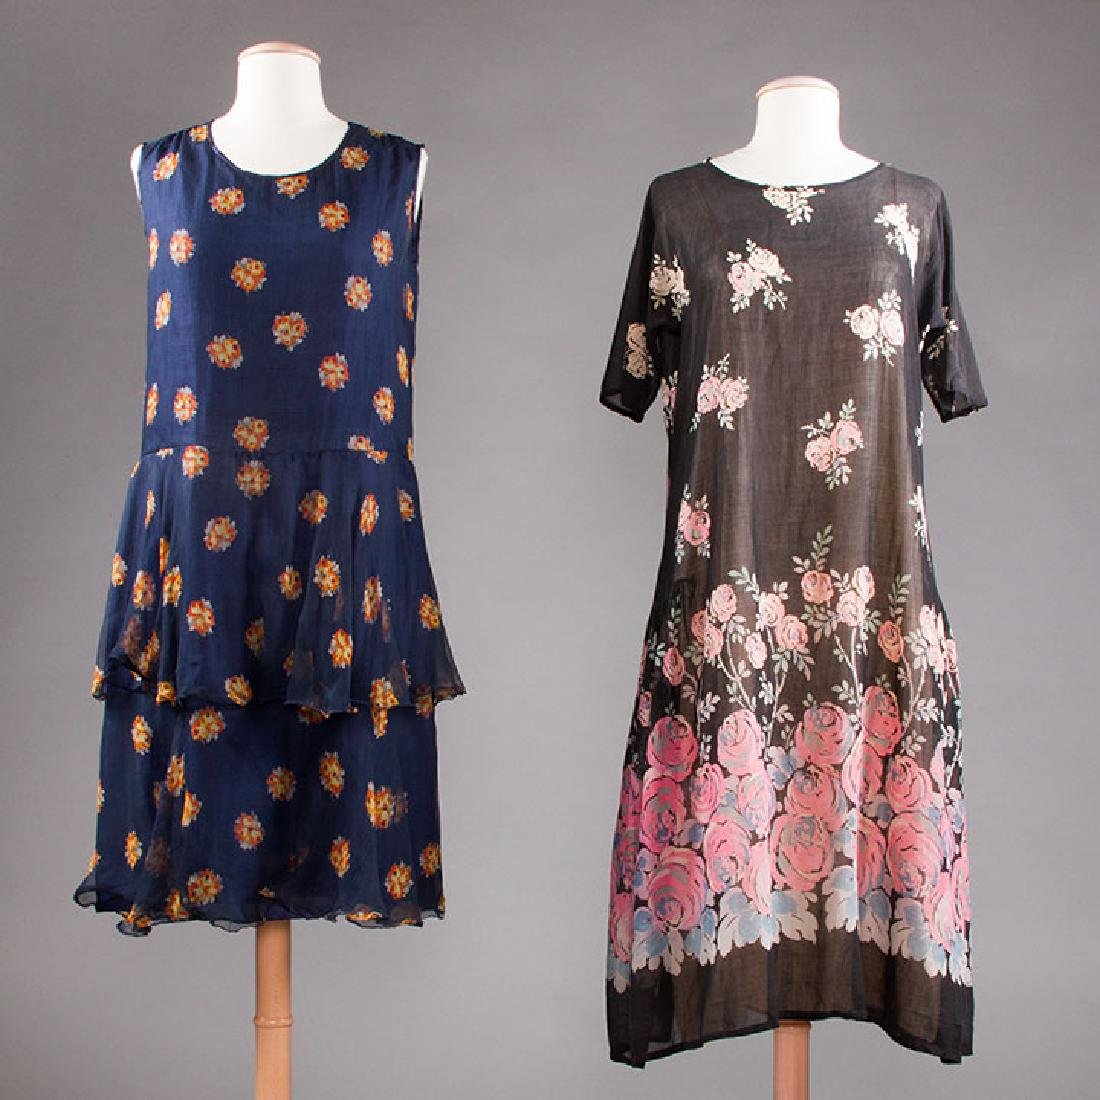 2 PRINTED DRESSES: 1 DAY & 1 PARTY, 1920s